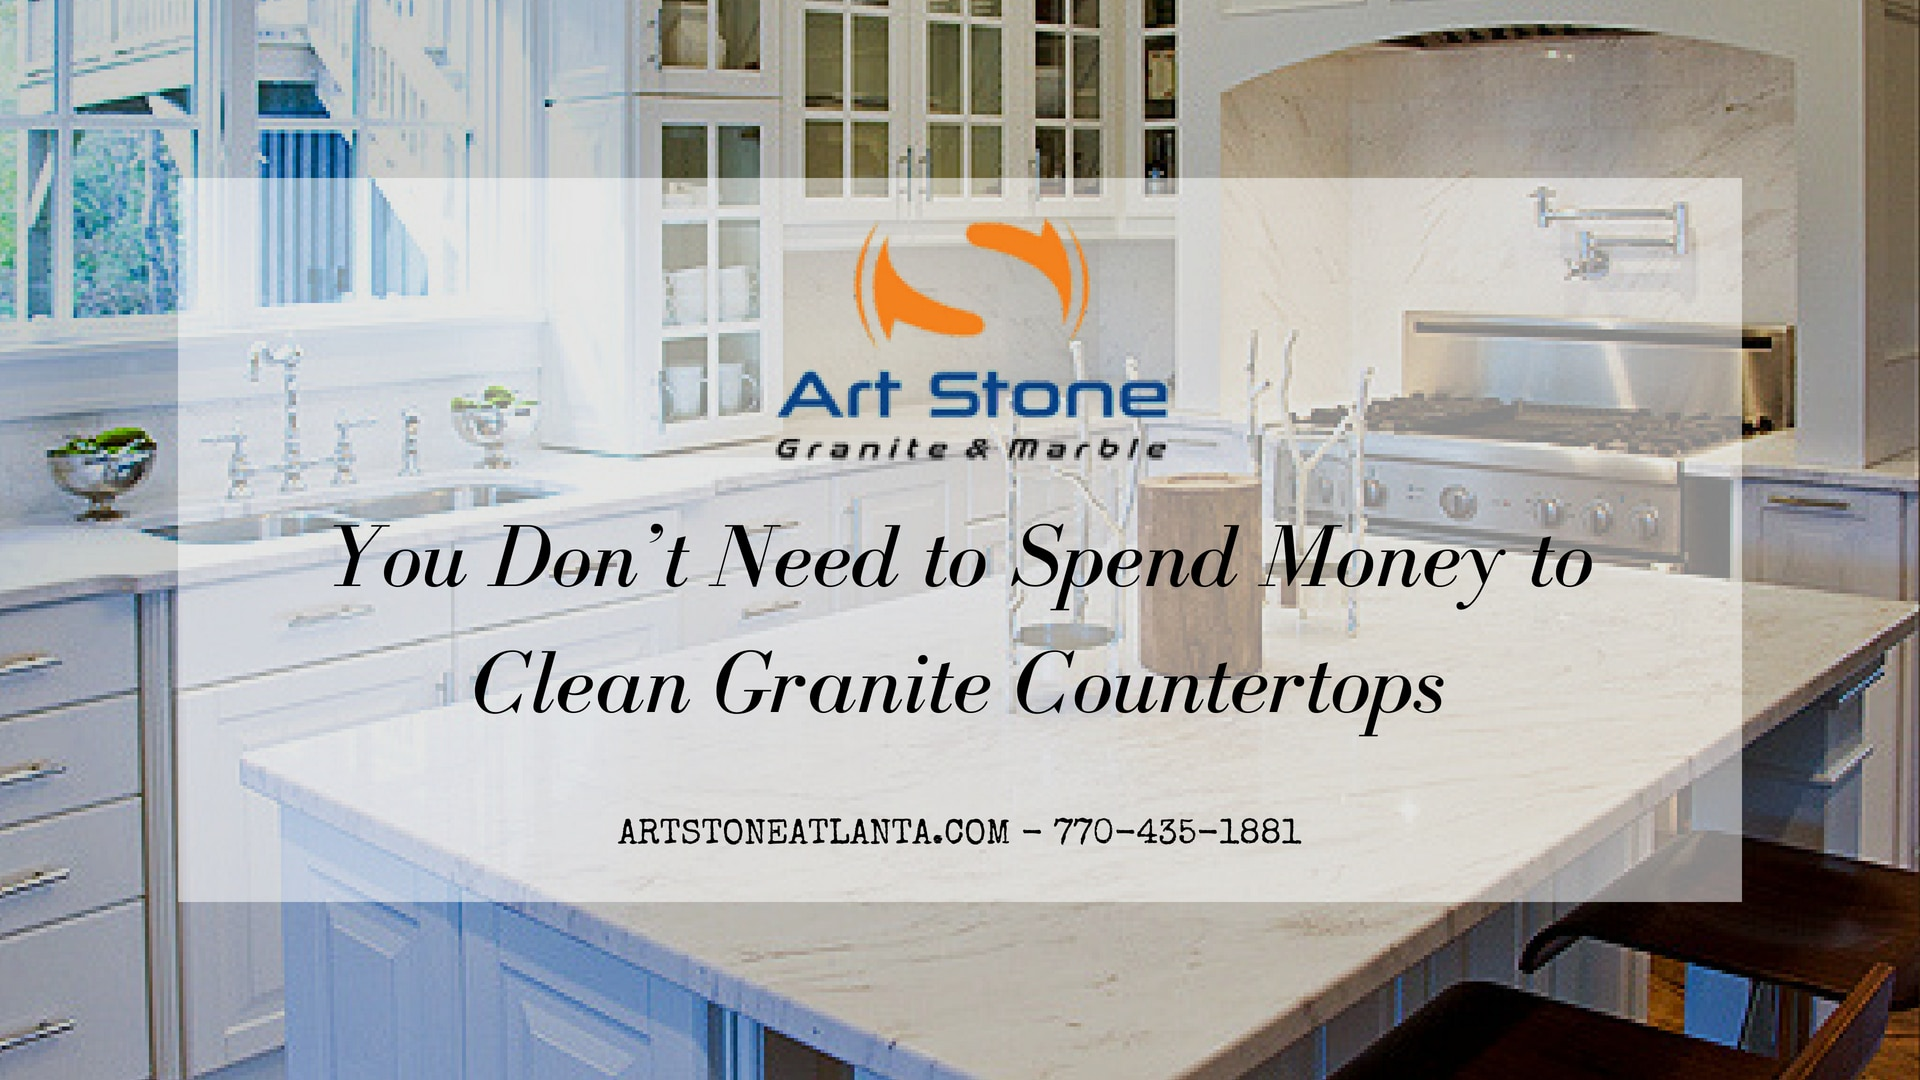 Art Stone Granite And Marble Inc